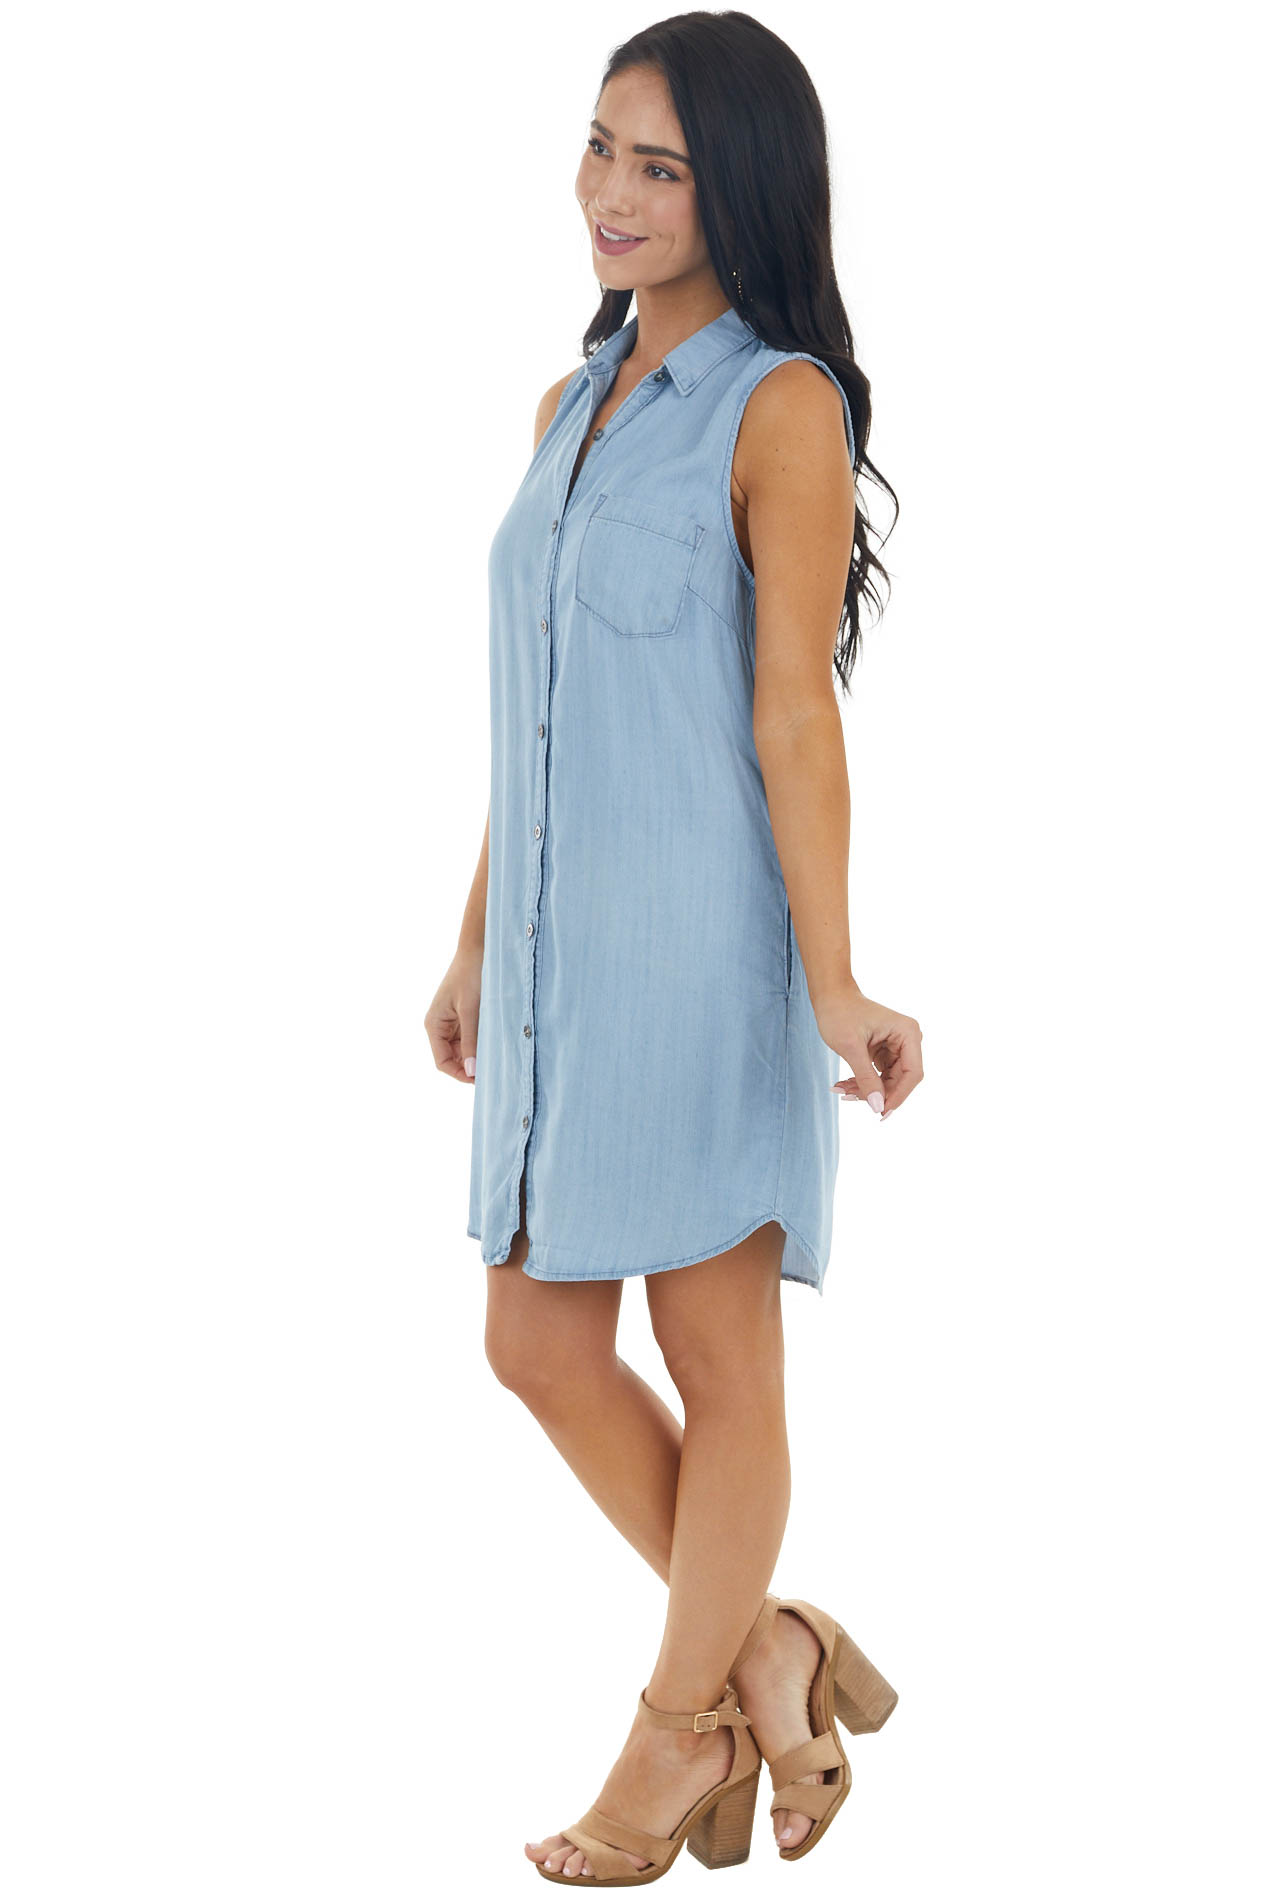 Light Wash Chambray Sleeveless Button Up Dress with Pocket